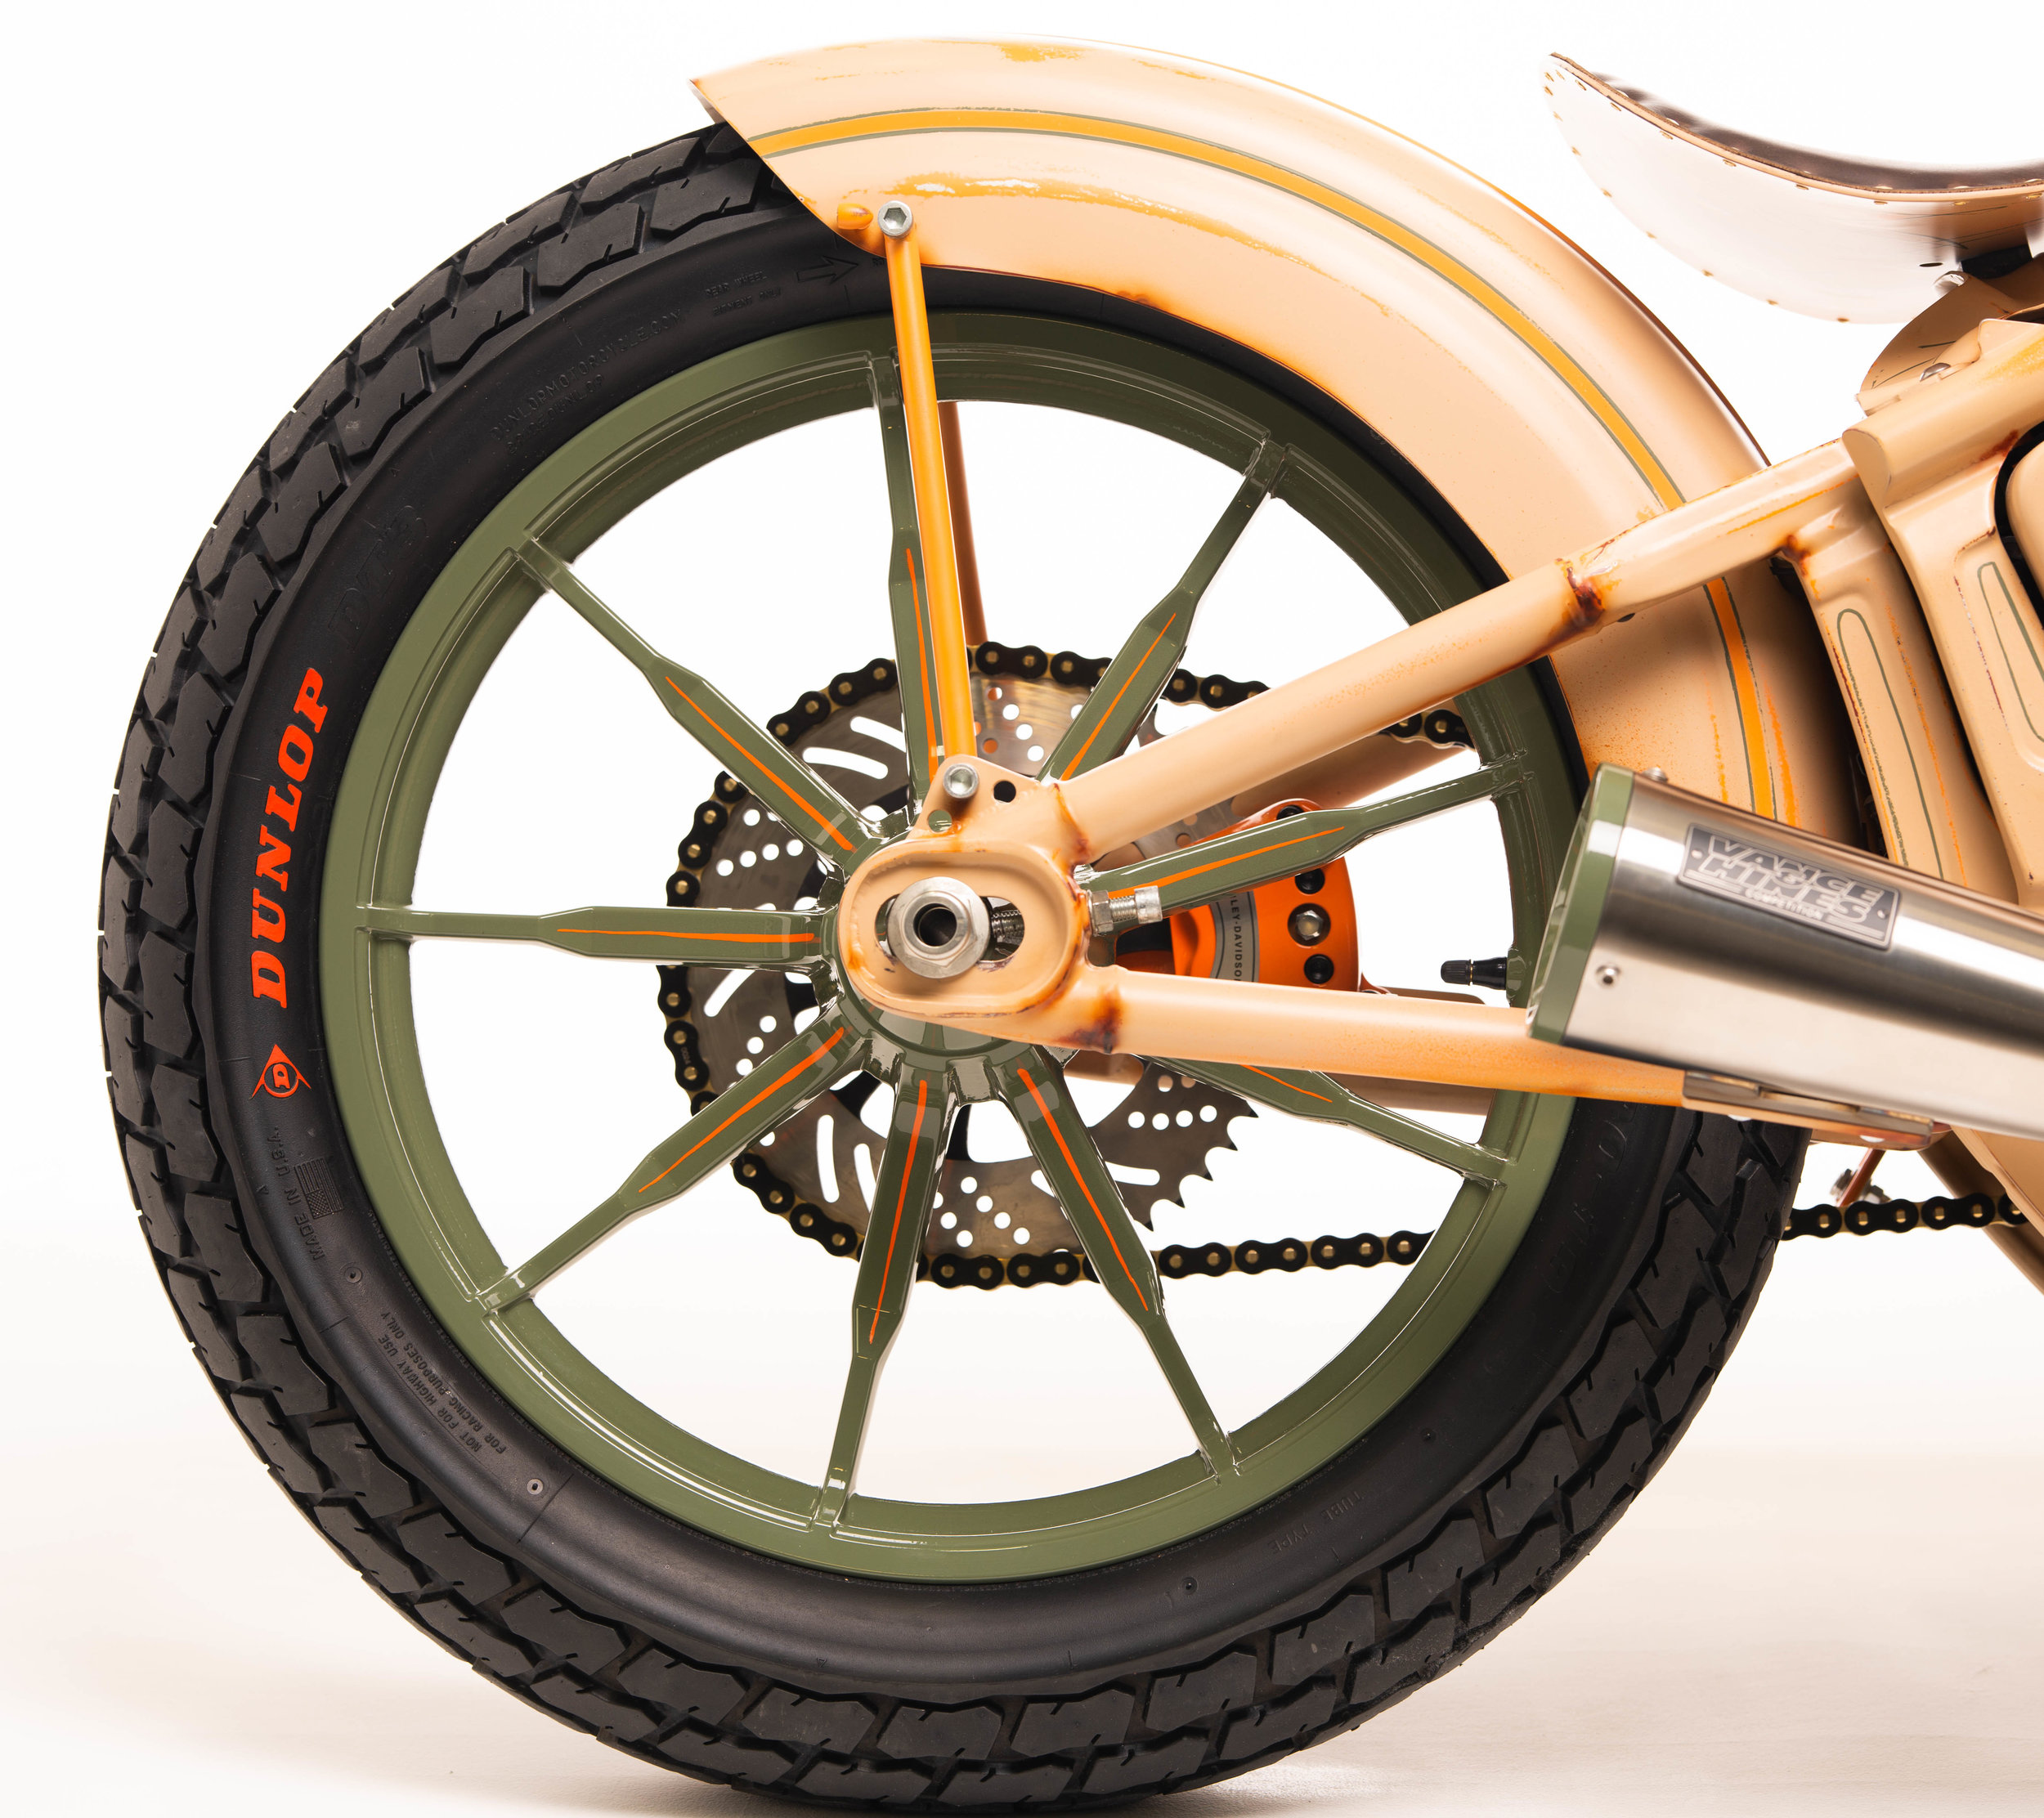 """19"""" Low Rider Front Wheels - Part No. 43300462    Modified Harley-Davidson Sportster Fender"""